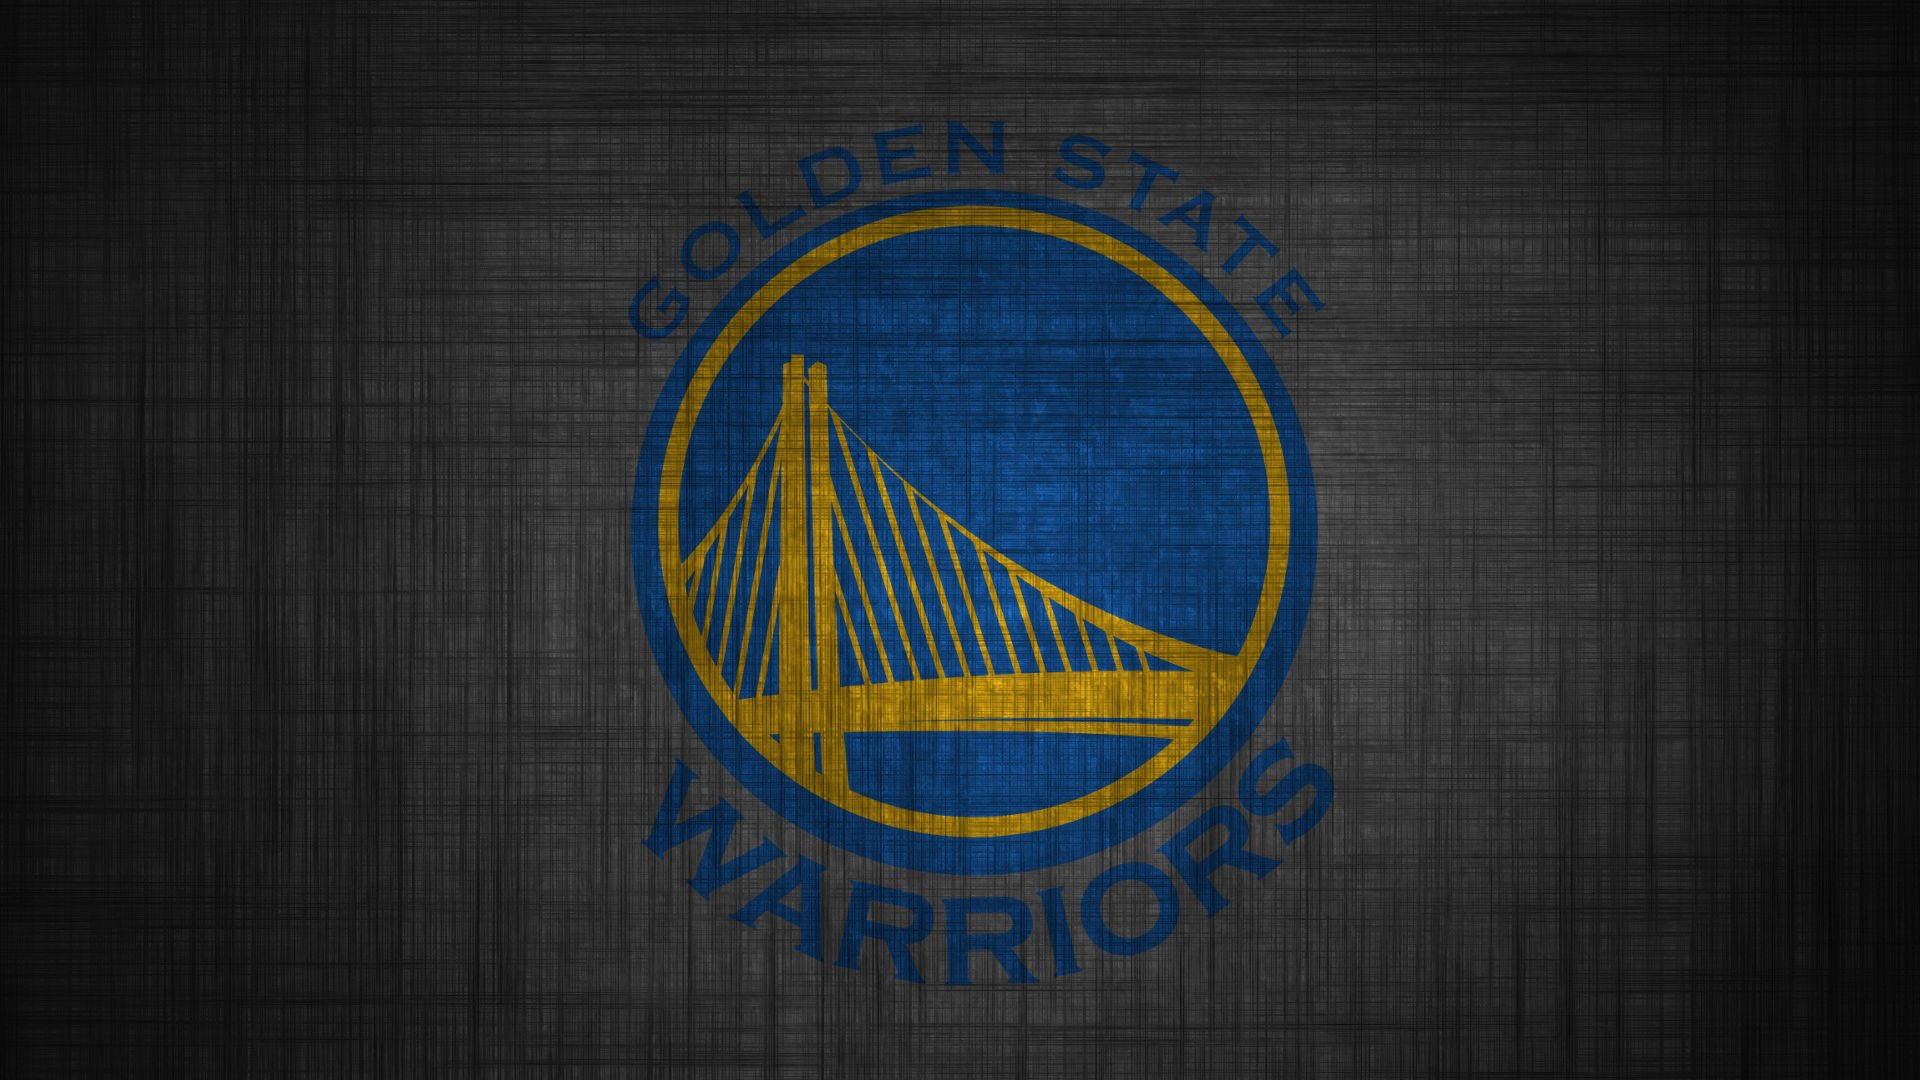 Golden State Warriors Logo Wallpaper Image Photo Picture 1920x1080